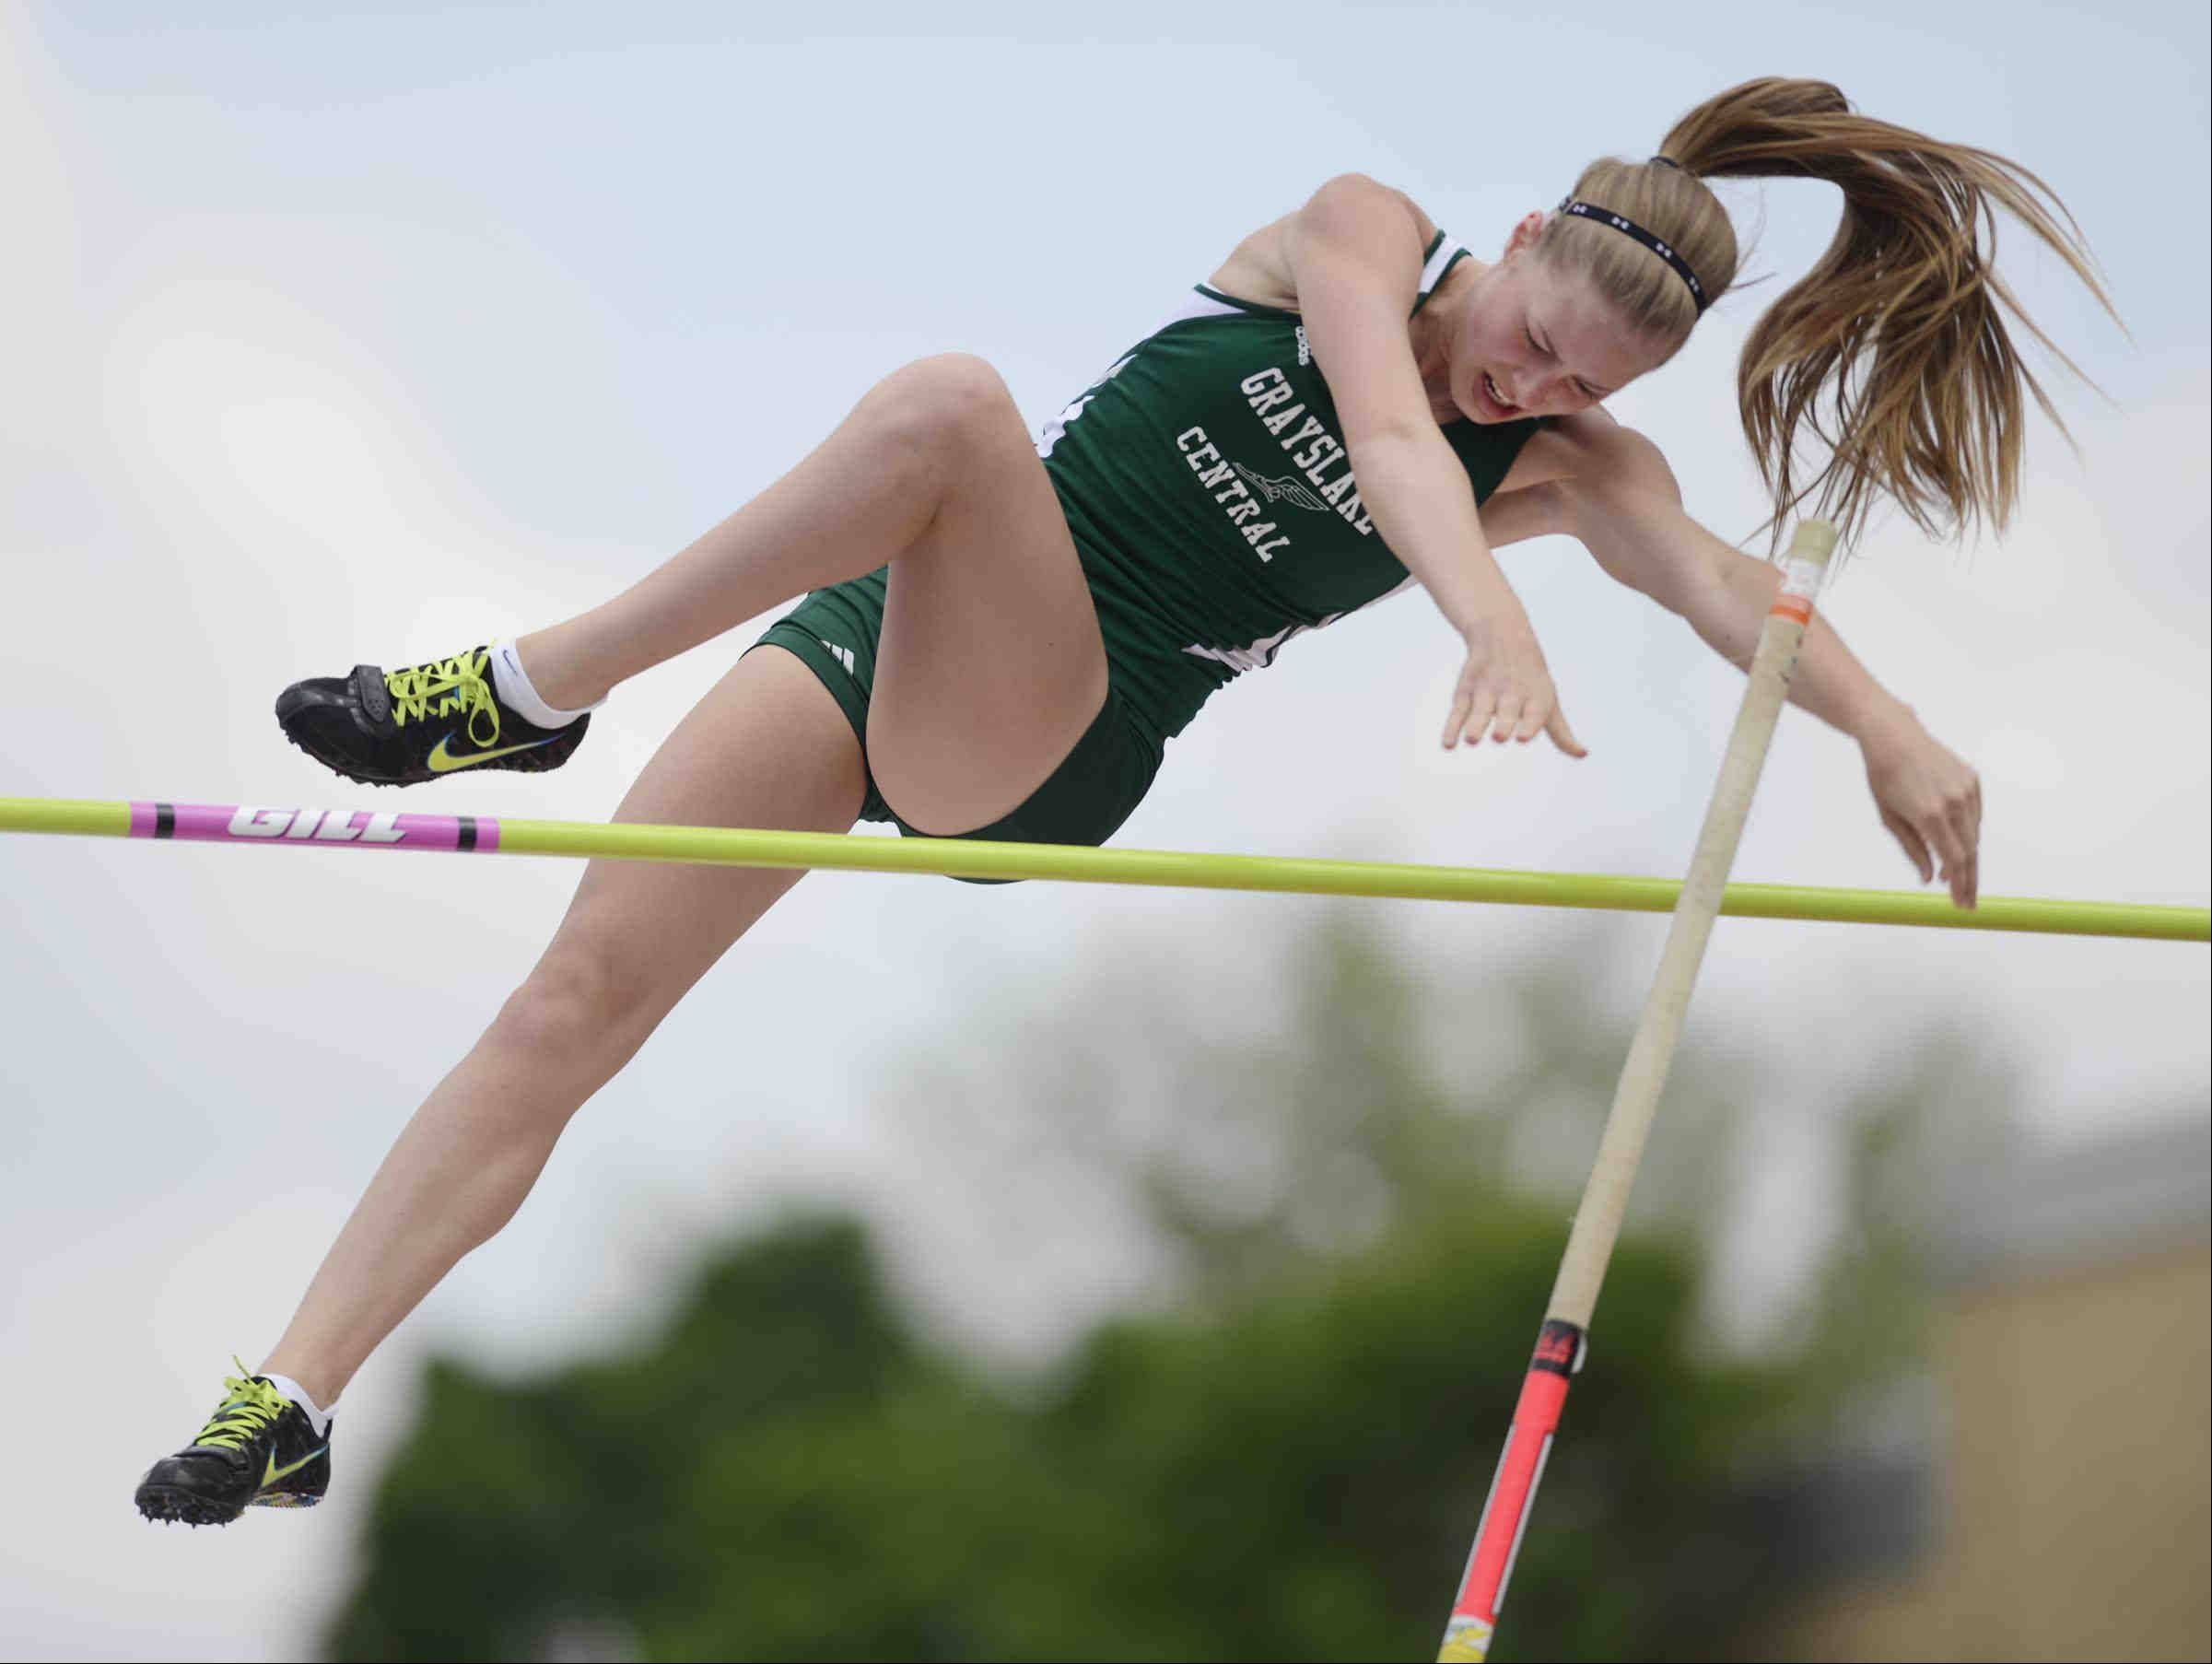 Grayslake Central's Cara Engel placed eighth Saturday in the pole vault at the Class 2A girls state track and field finals in Charleston.